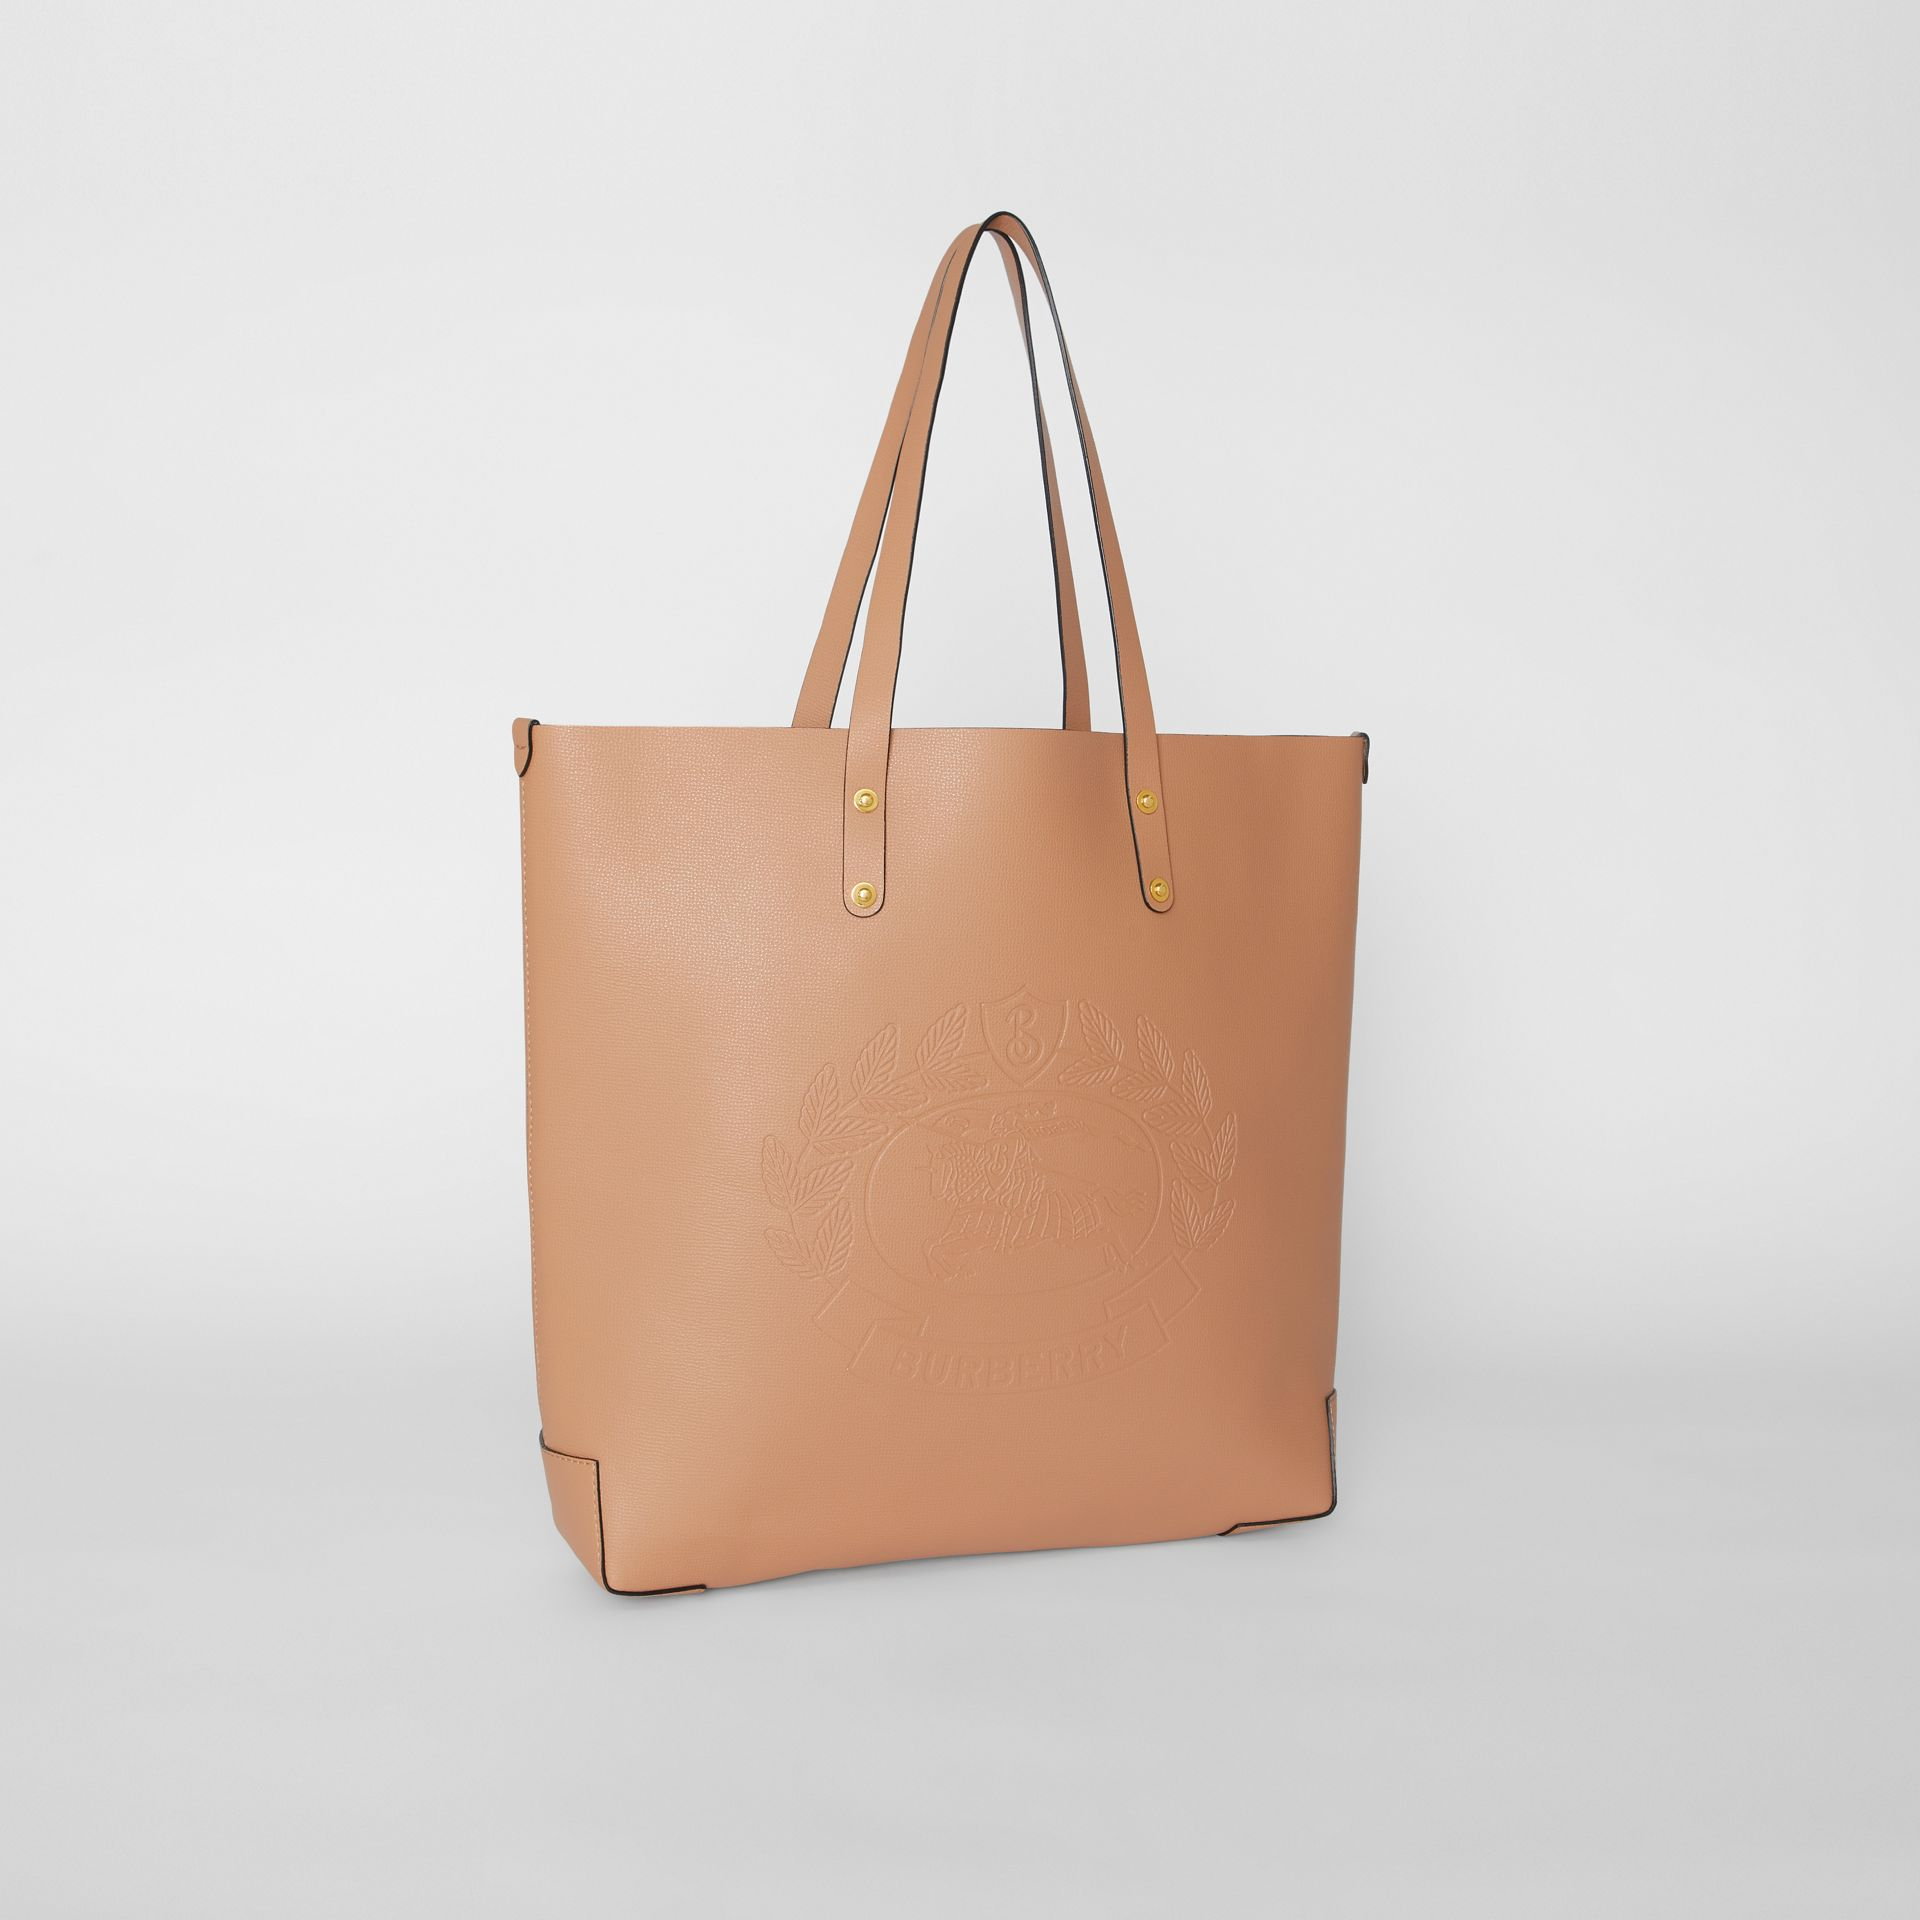 Embossed Crest Leather Tote in Light Camel - Women | Burberry United Kingdom - gallery image 4